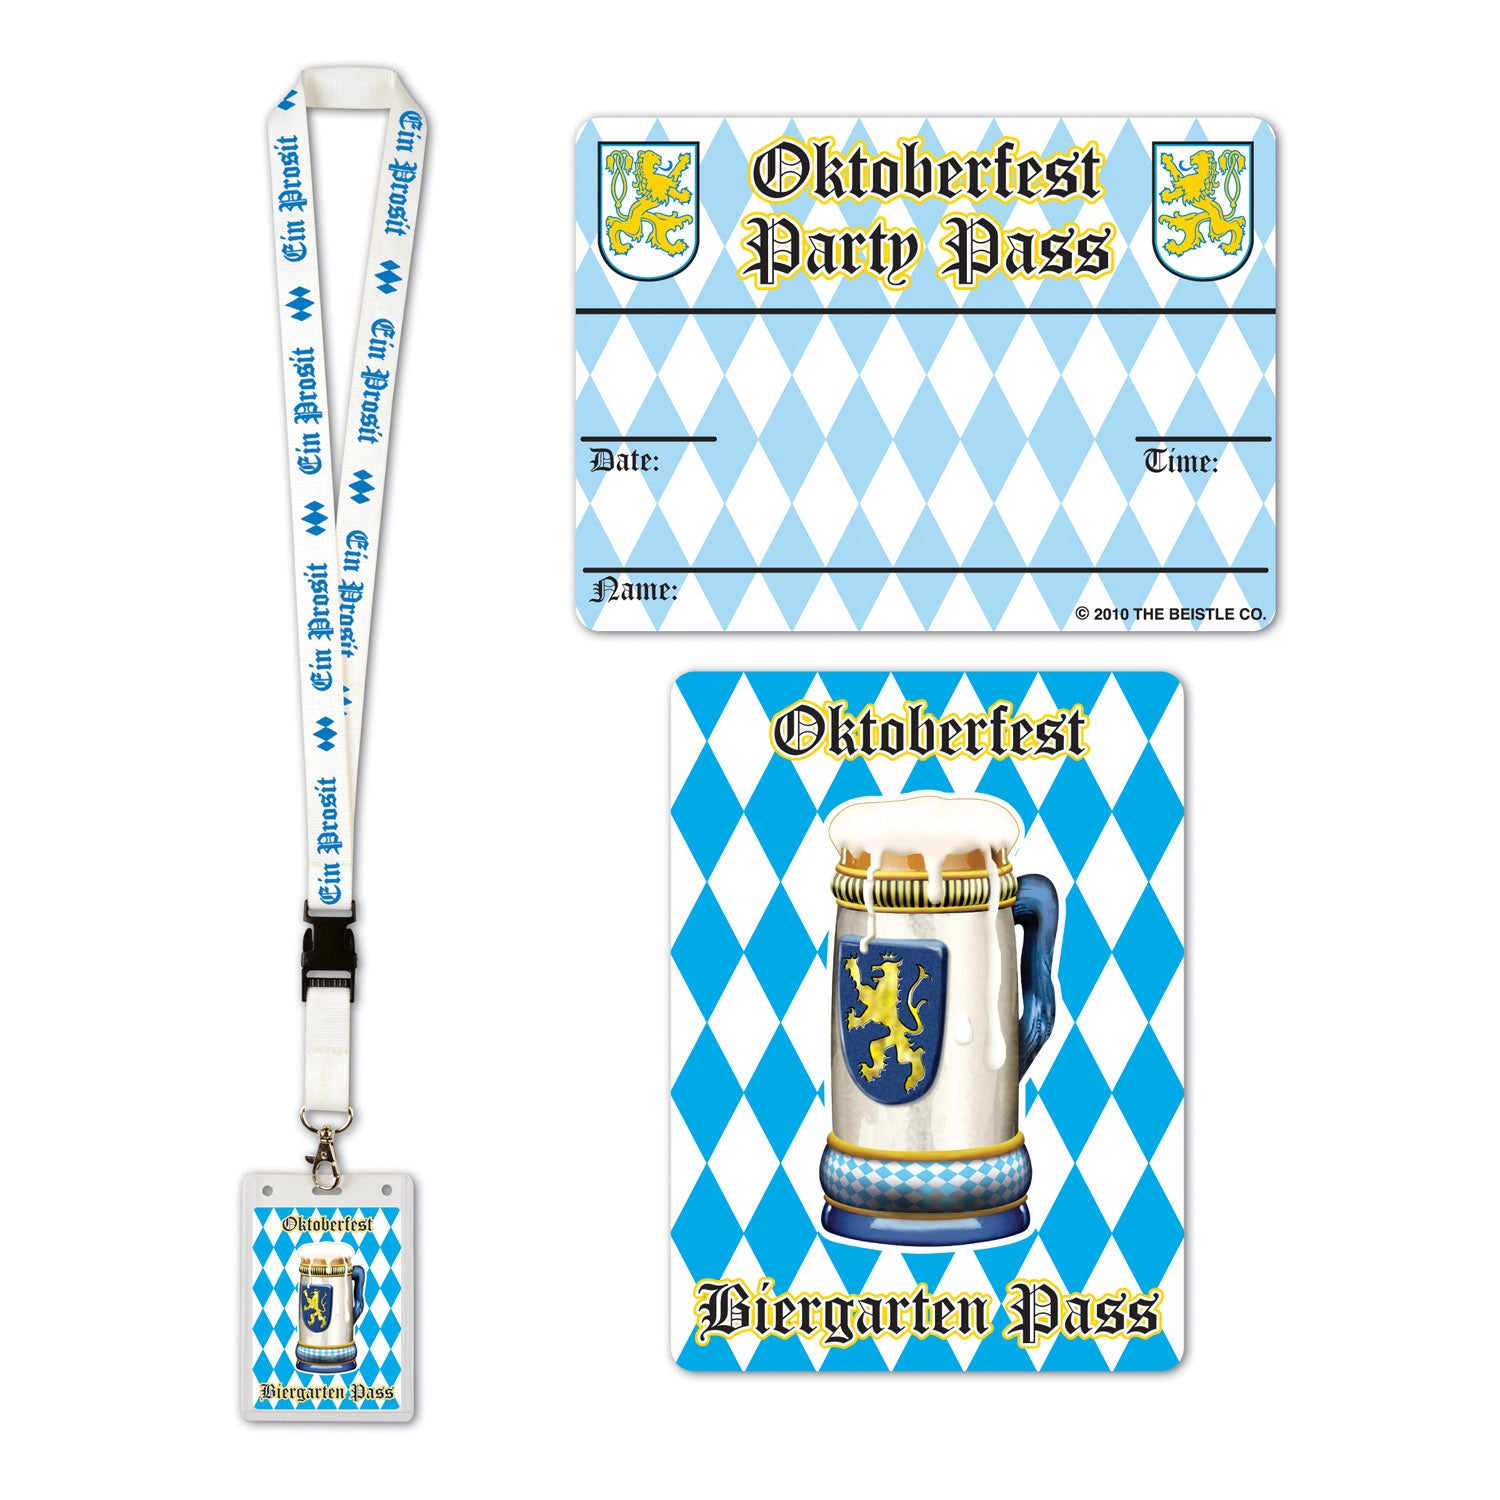 Oktoberfest Party Pass by Beistle - Oktoberfest Theme Decorations